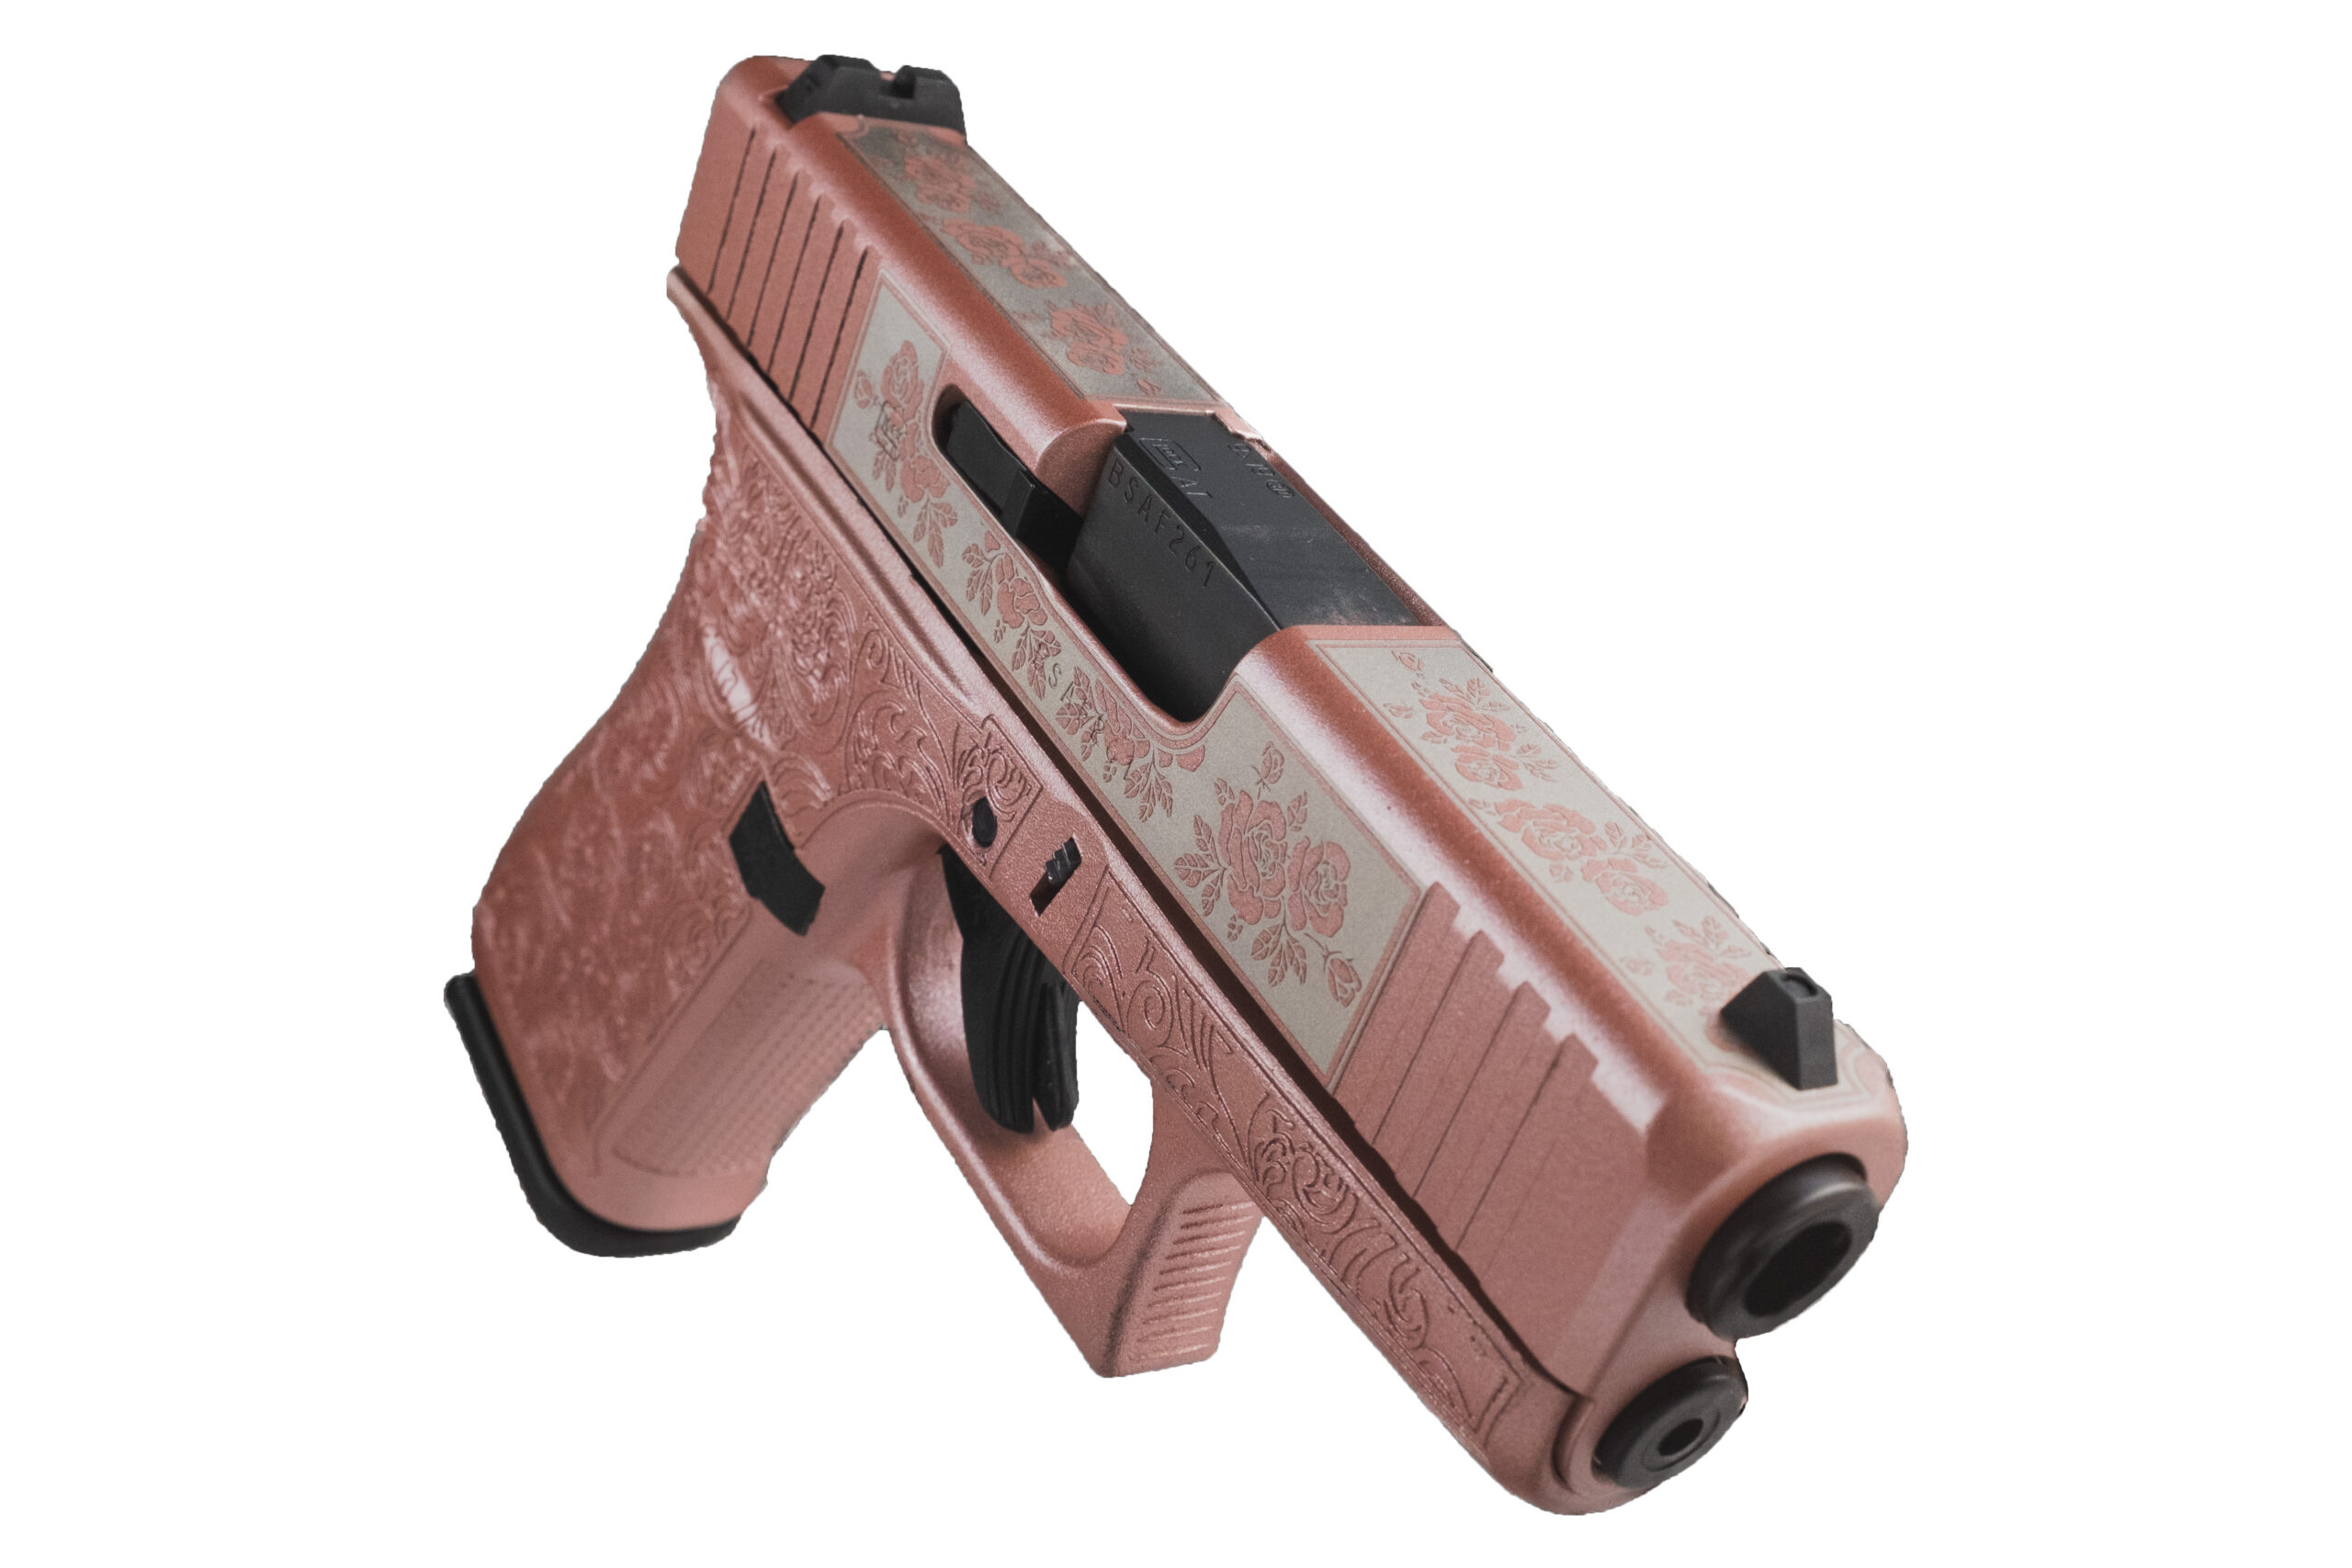 front of rose colored glock handgun